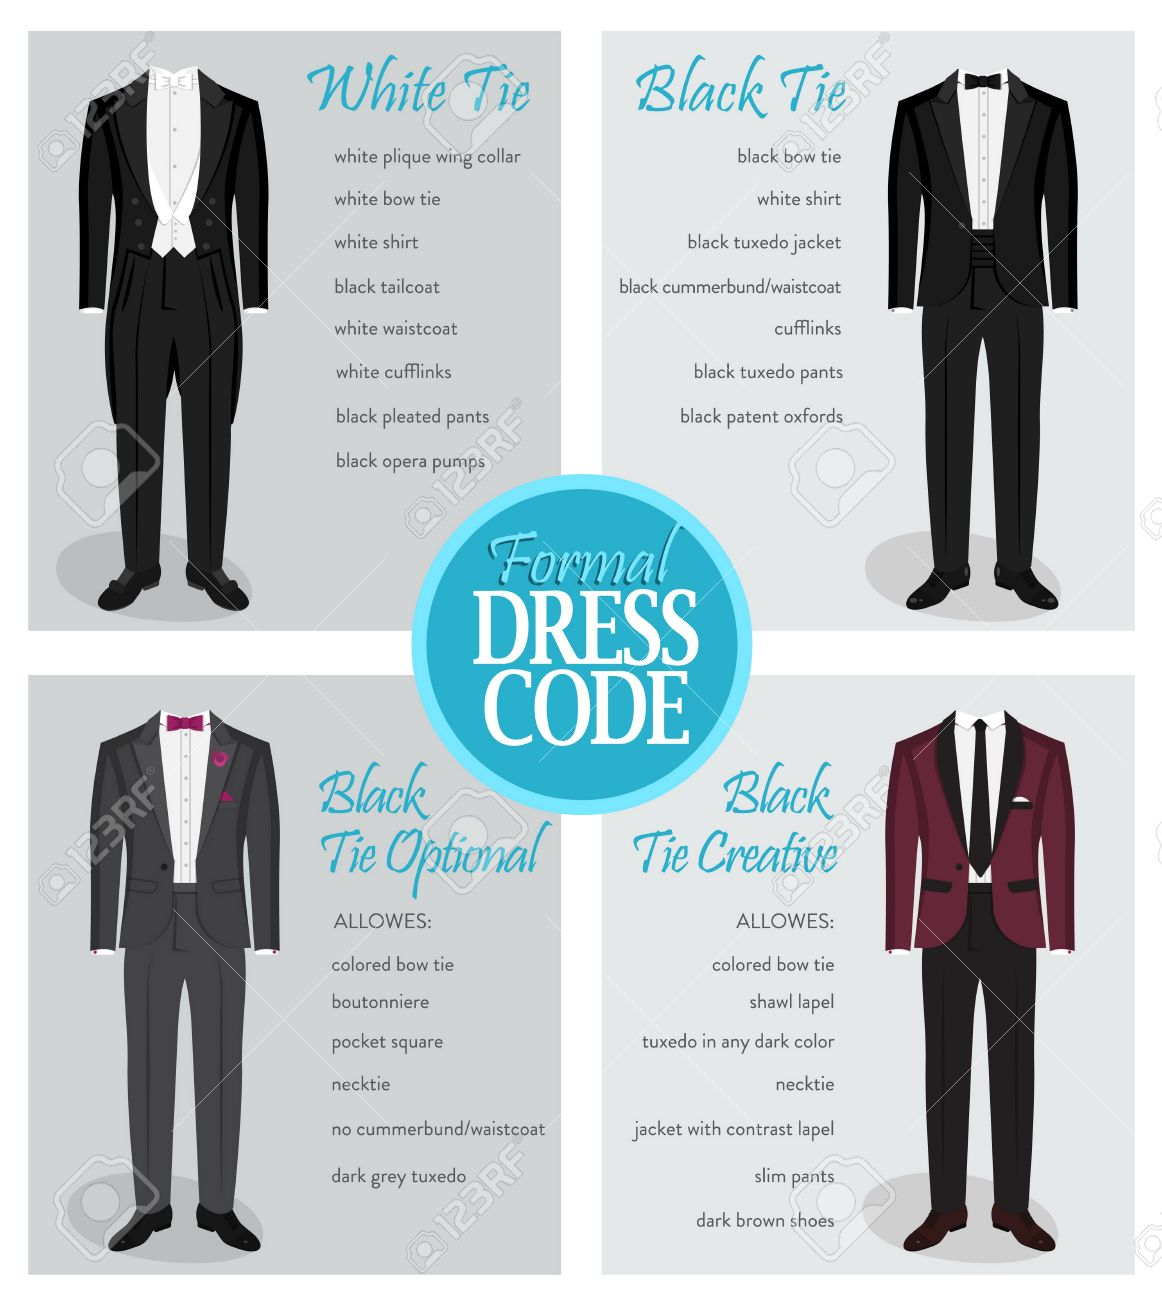 Formal Dress Code Guide Information Chart For Men. Suitable Outfits ...